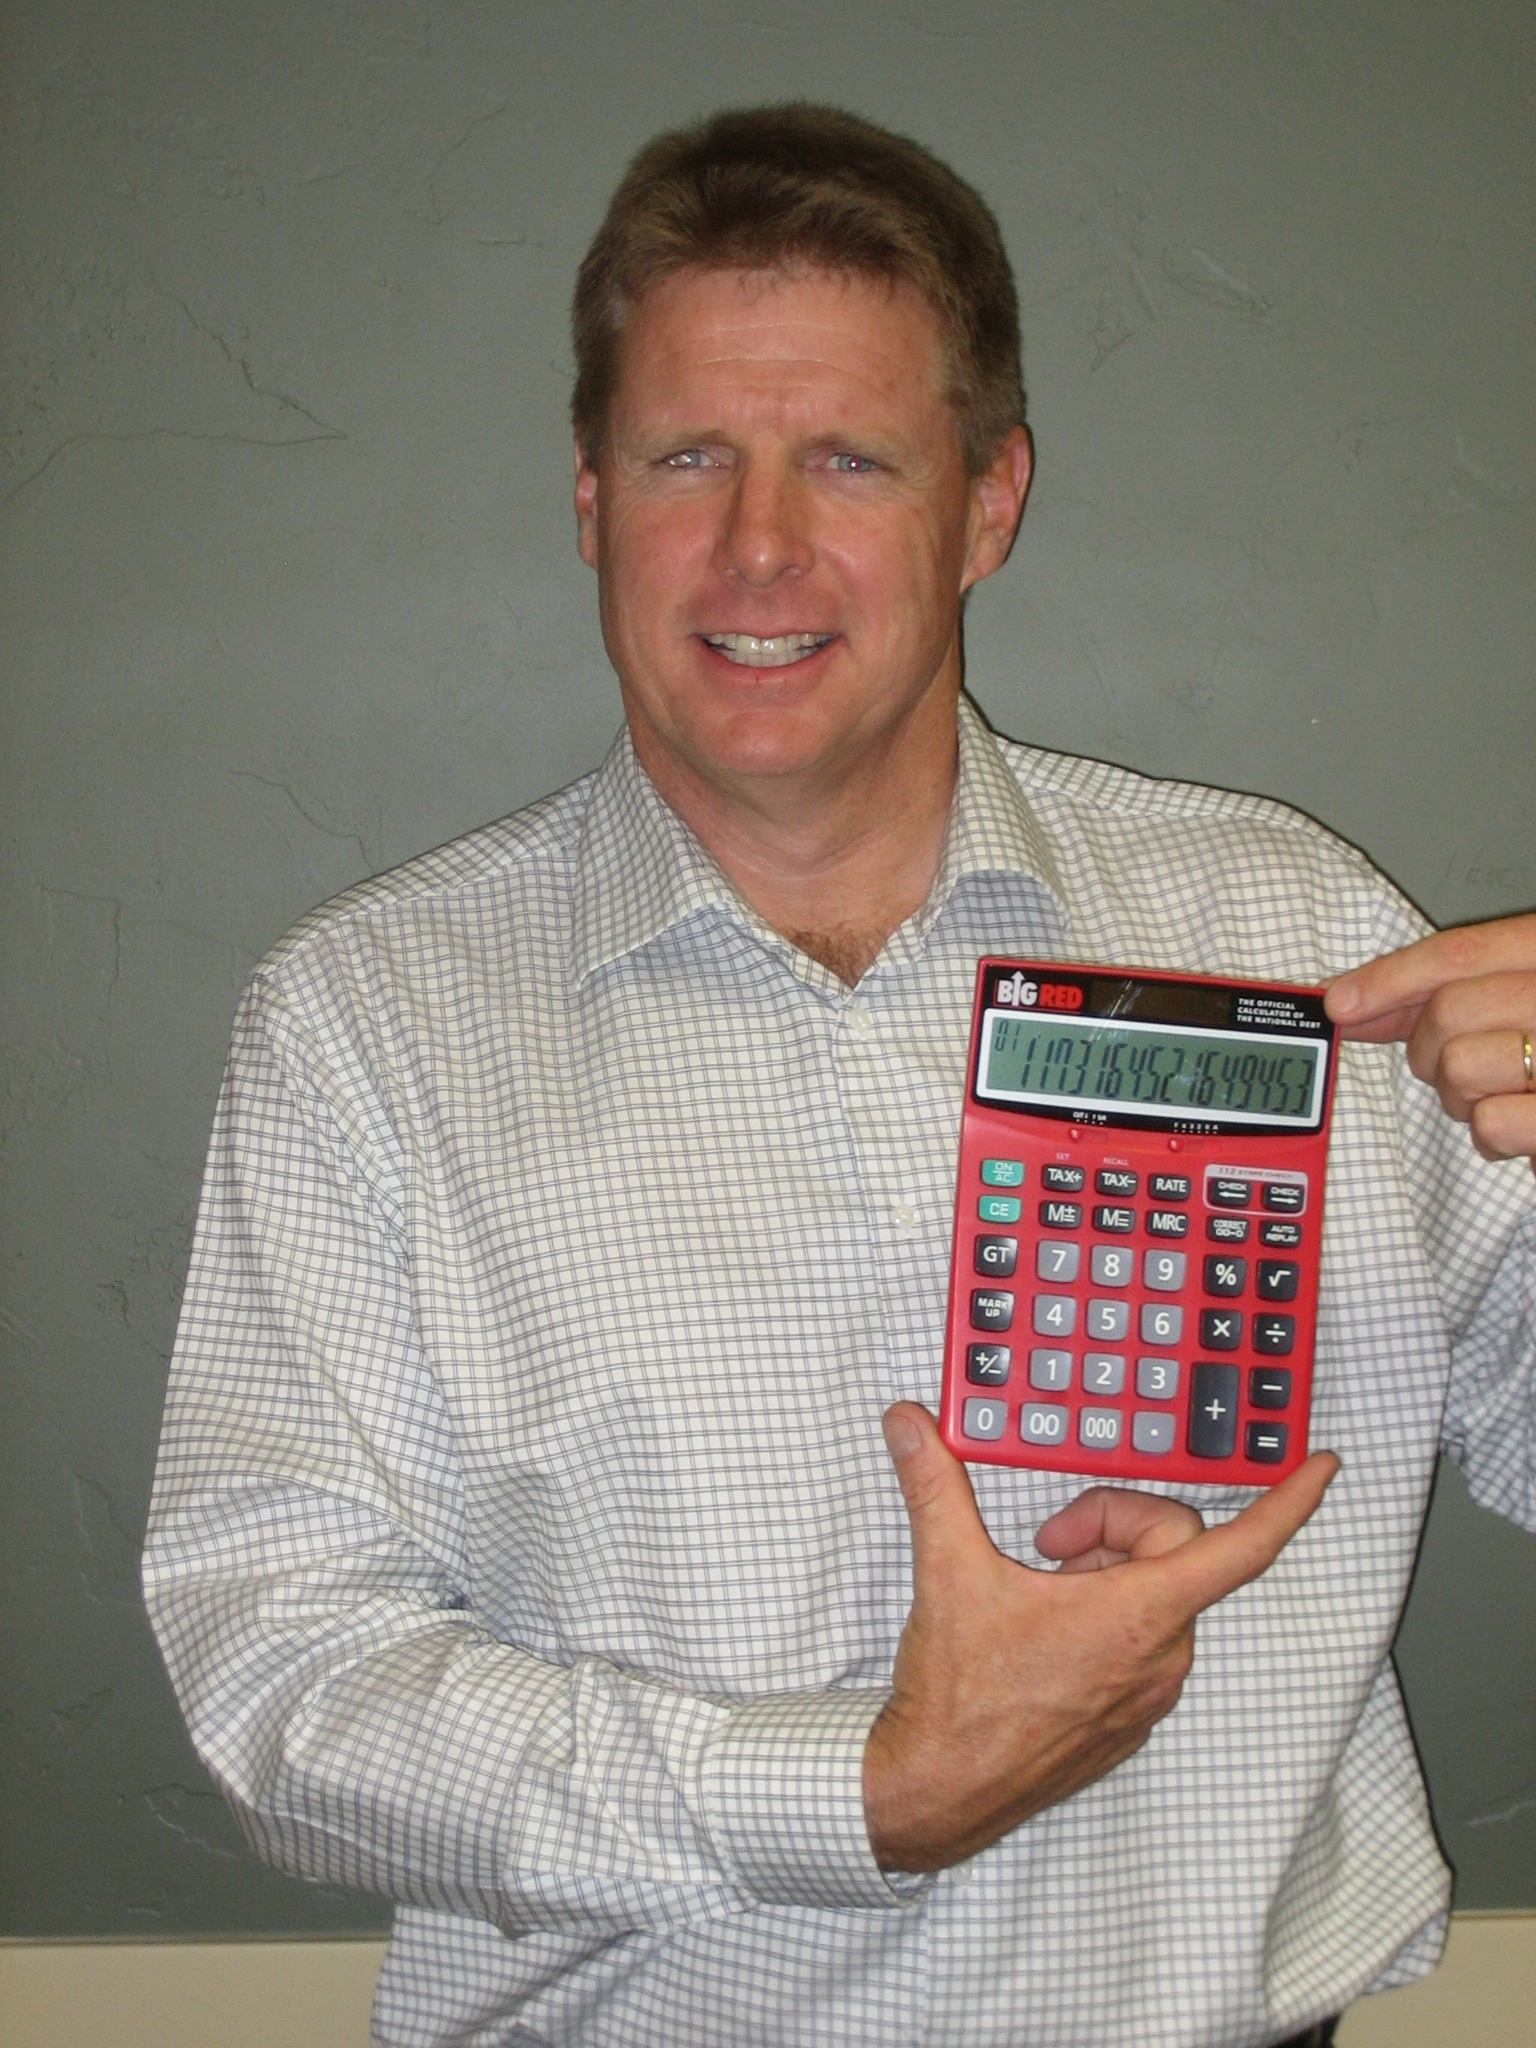 Matt Miles With His Big Red Calculator